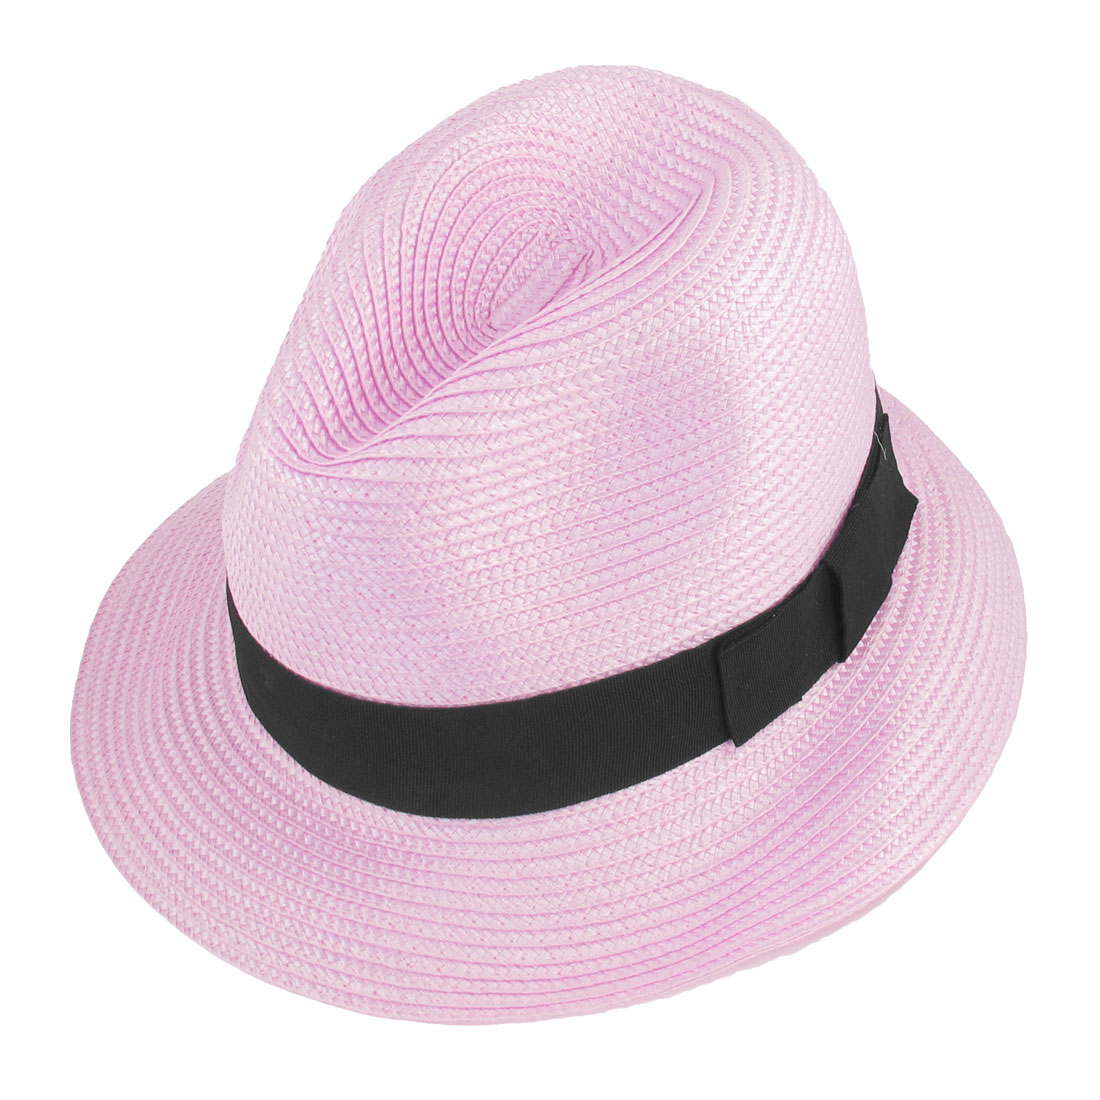 Summer Outdoor Strap Decor Light Pink Nylon Braid Trilby Hat for Women